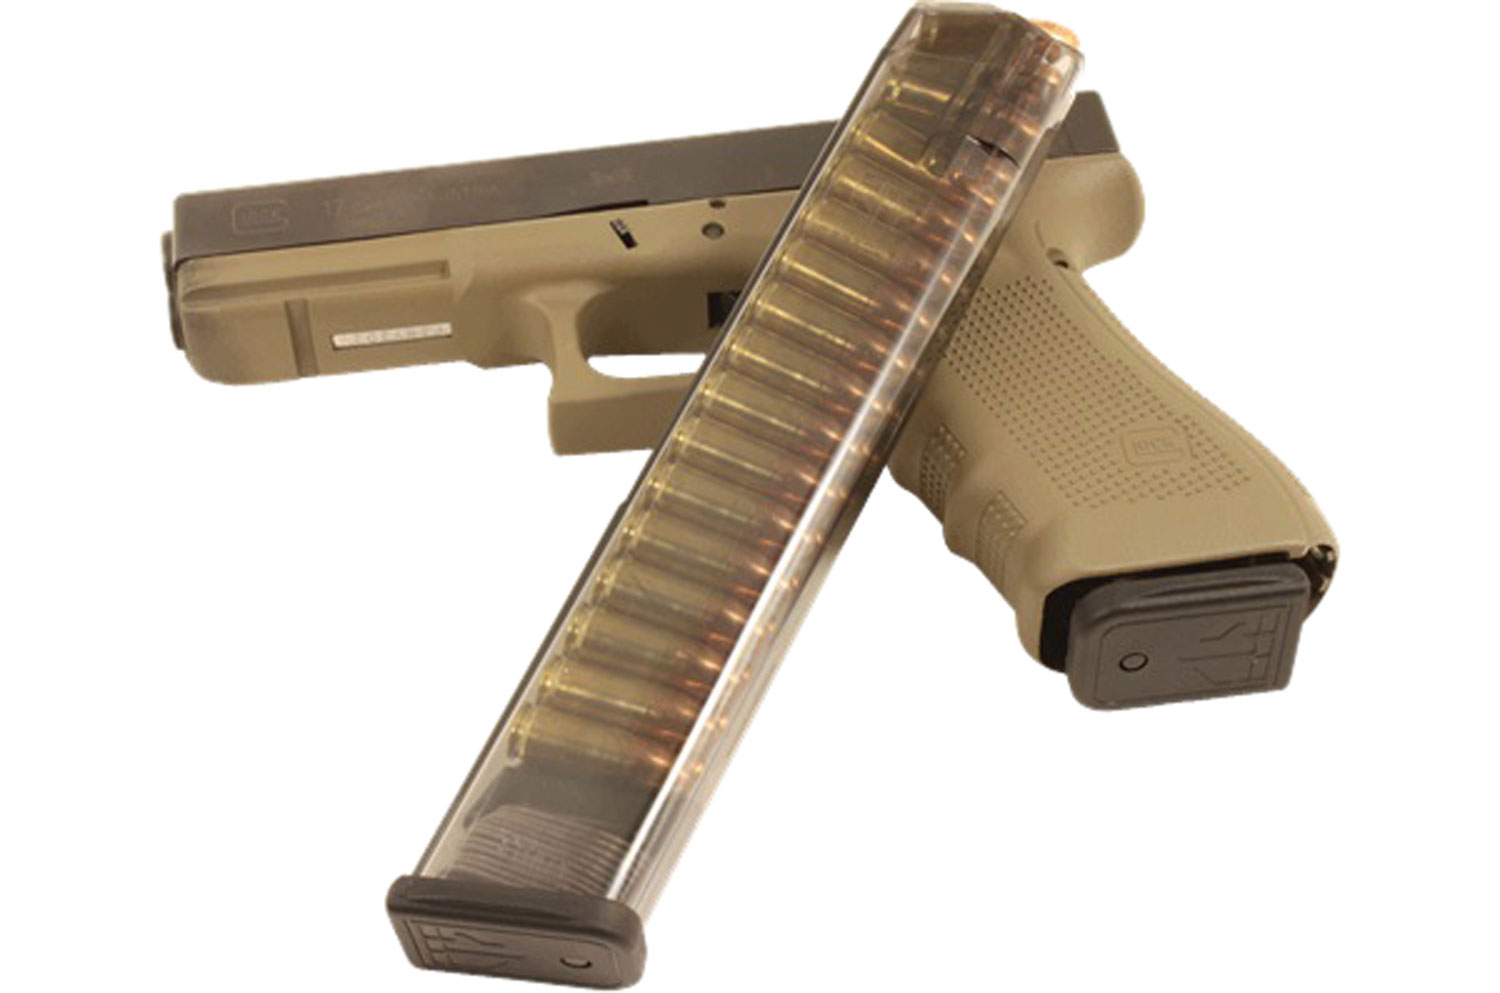 ETS Group GLK-18 Glock Compatible 9mm Luger G17,18,19,19x,26,34,45 31rd Clear Extended